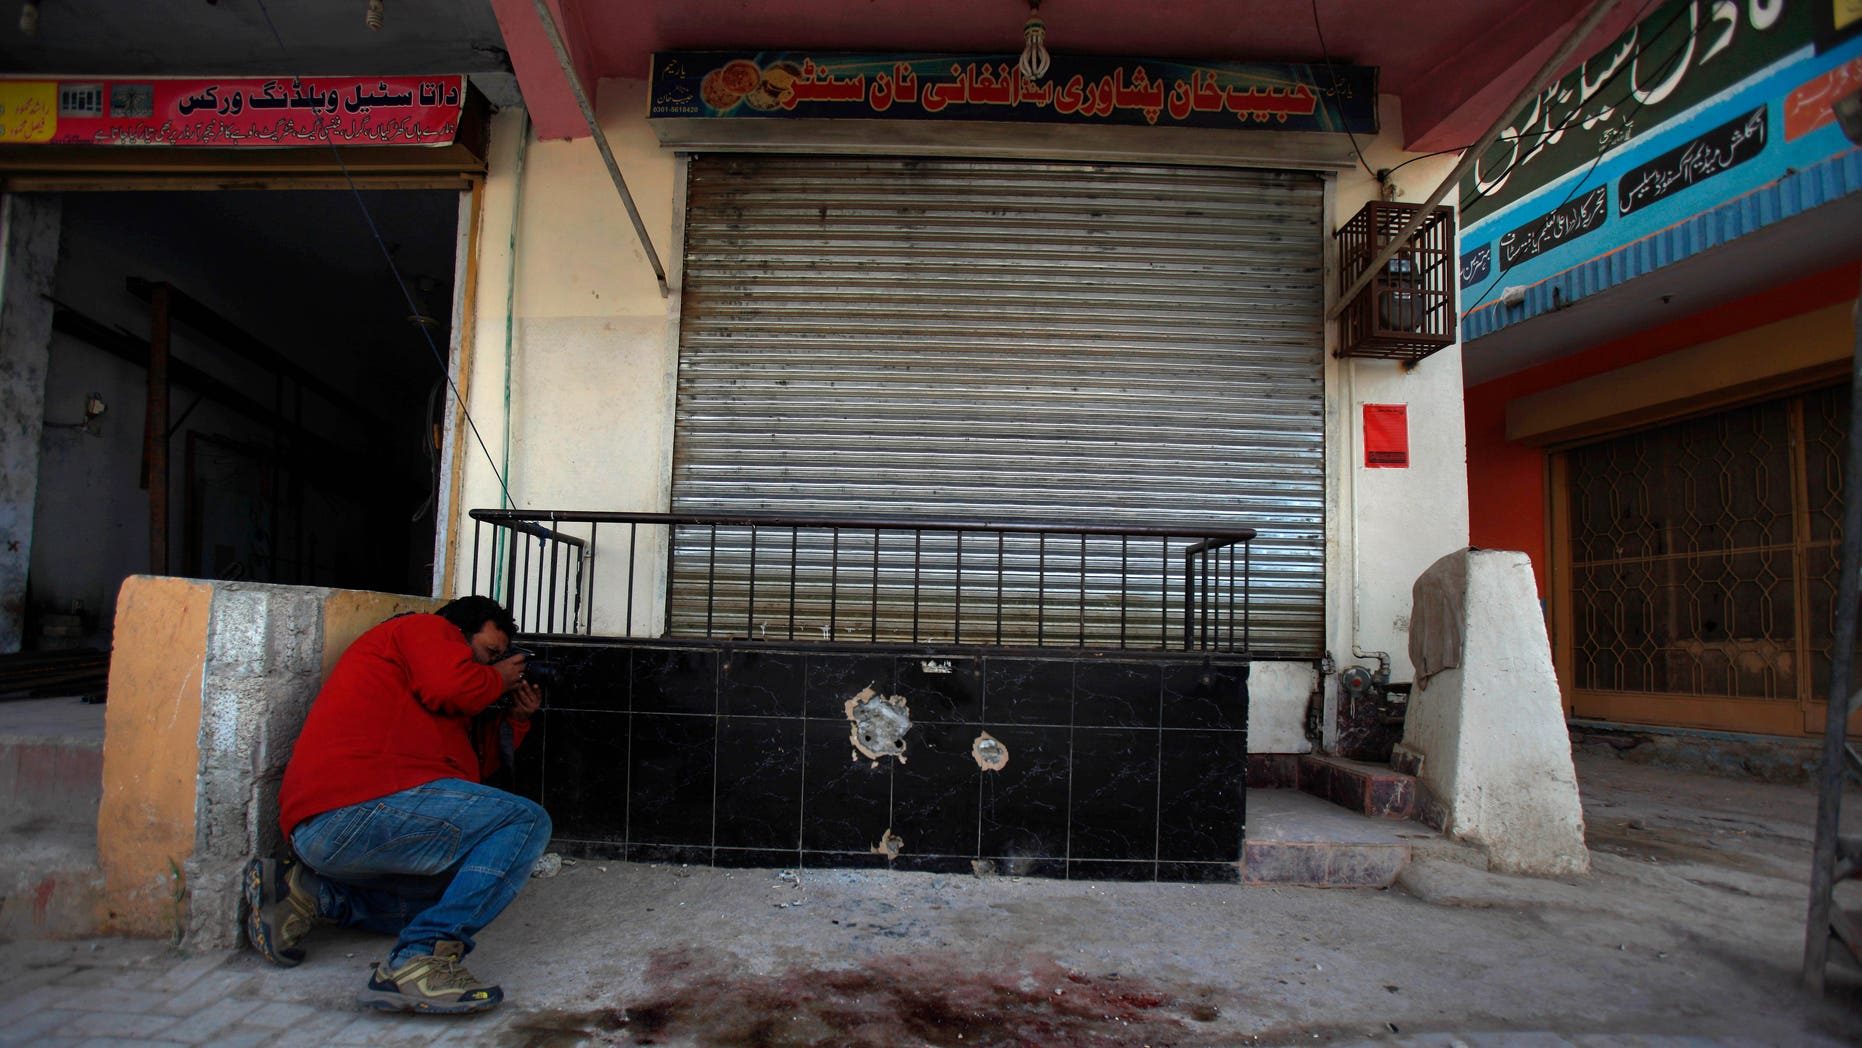 Nov. 11, 2013 - A photographer takes picture of the spot where Nasiruddin Haqqani, a senior leader of the feared militant Haqqani network, was assassinated at an Afghan bakery in the Bhara Kahu area on the outskirts of Islamabad, Pakistan.